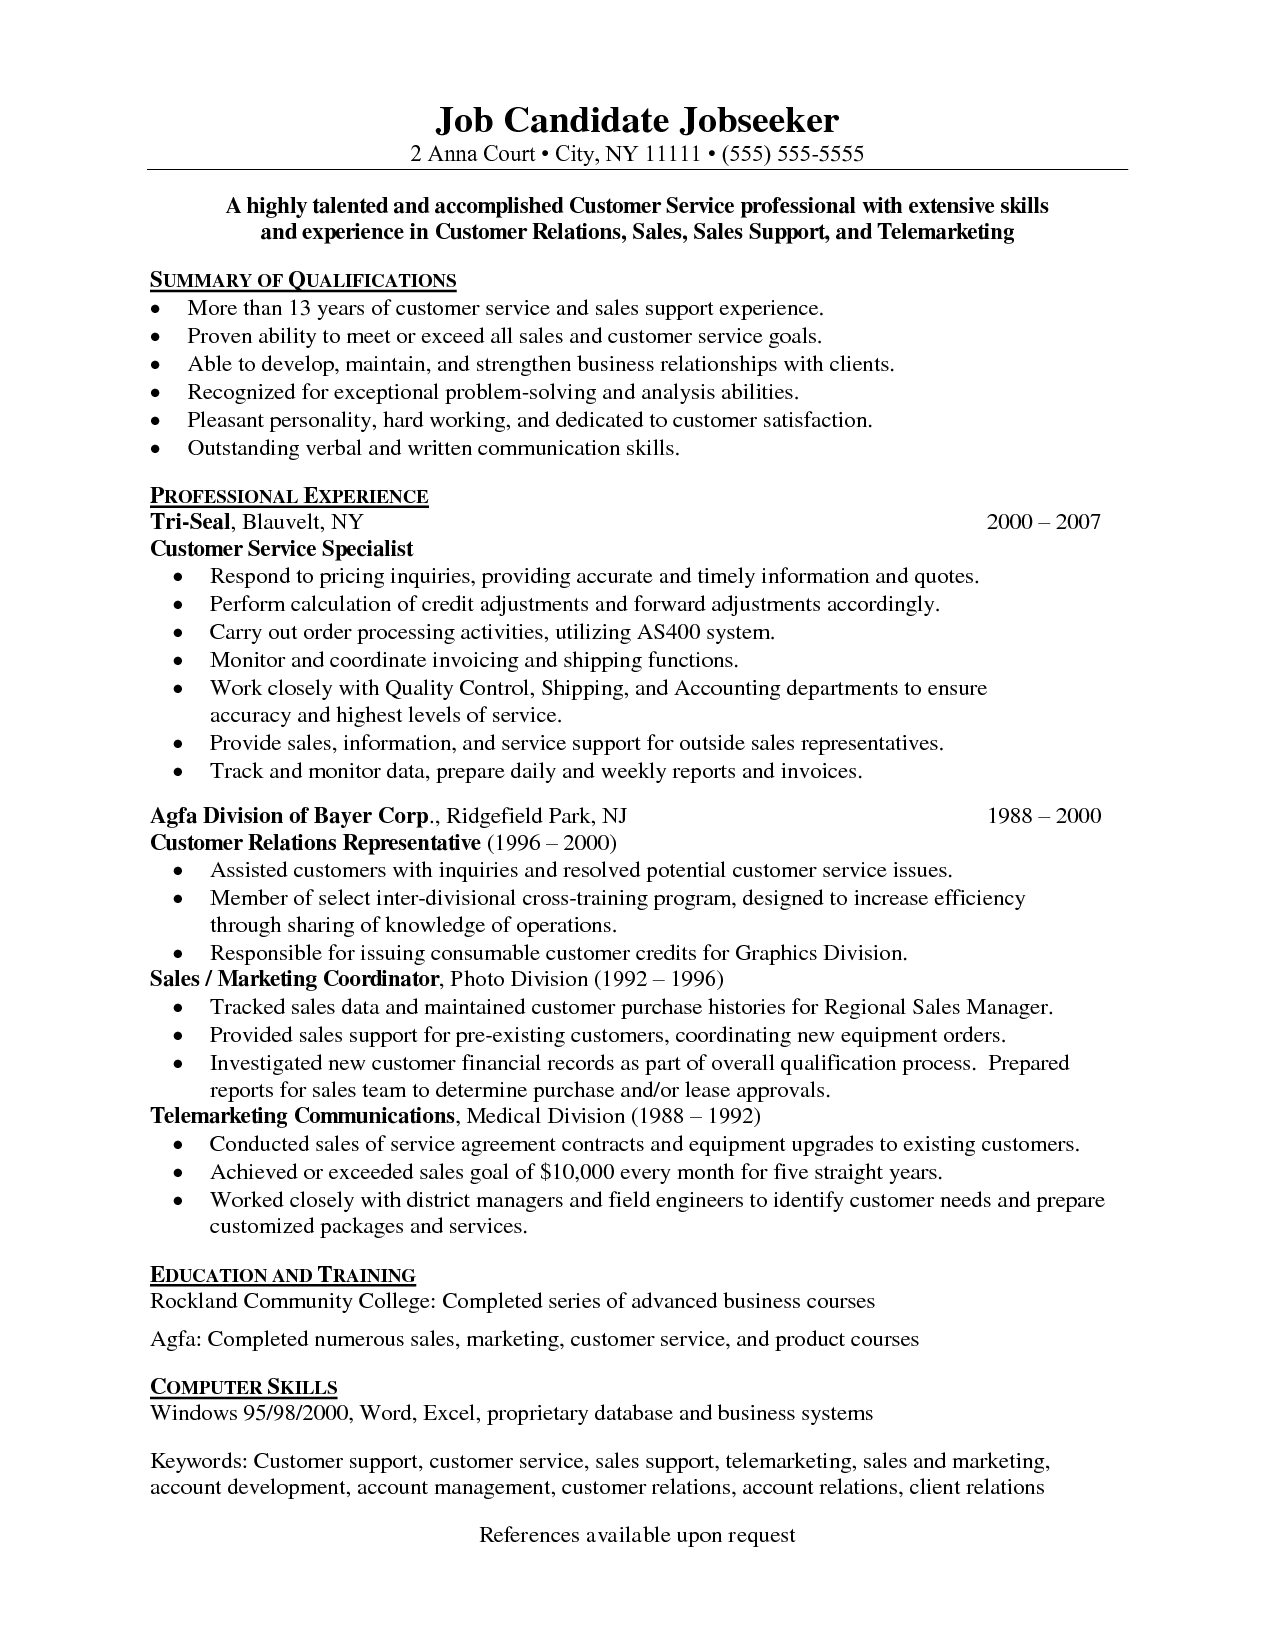 Resume Examples  Teachers Resume Objectives  teachers resume with